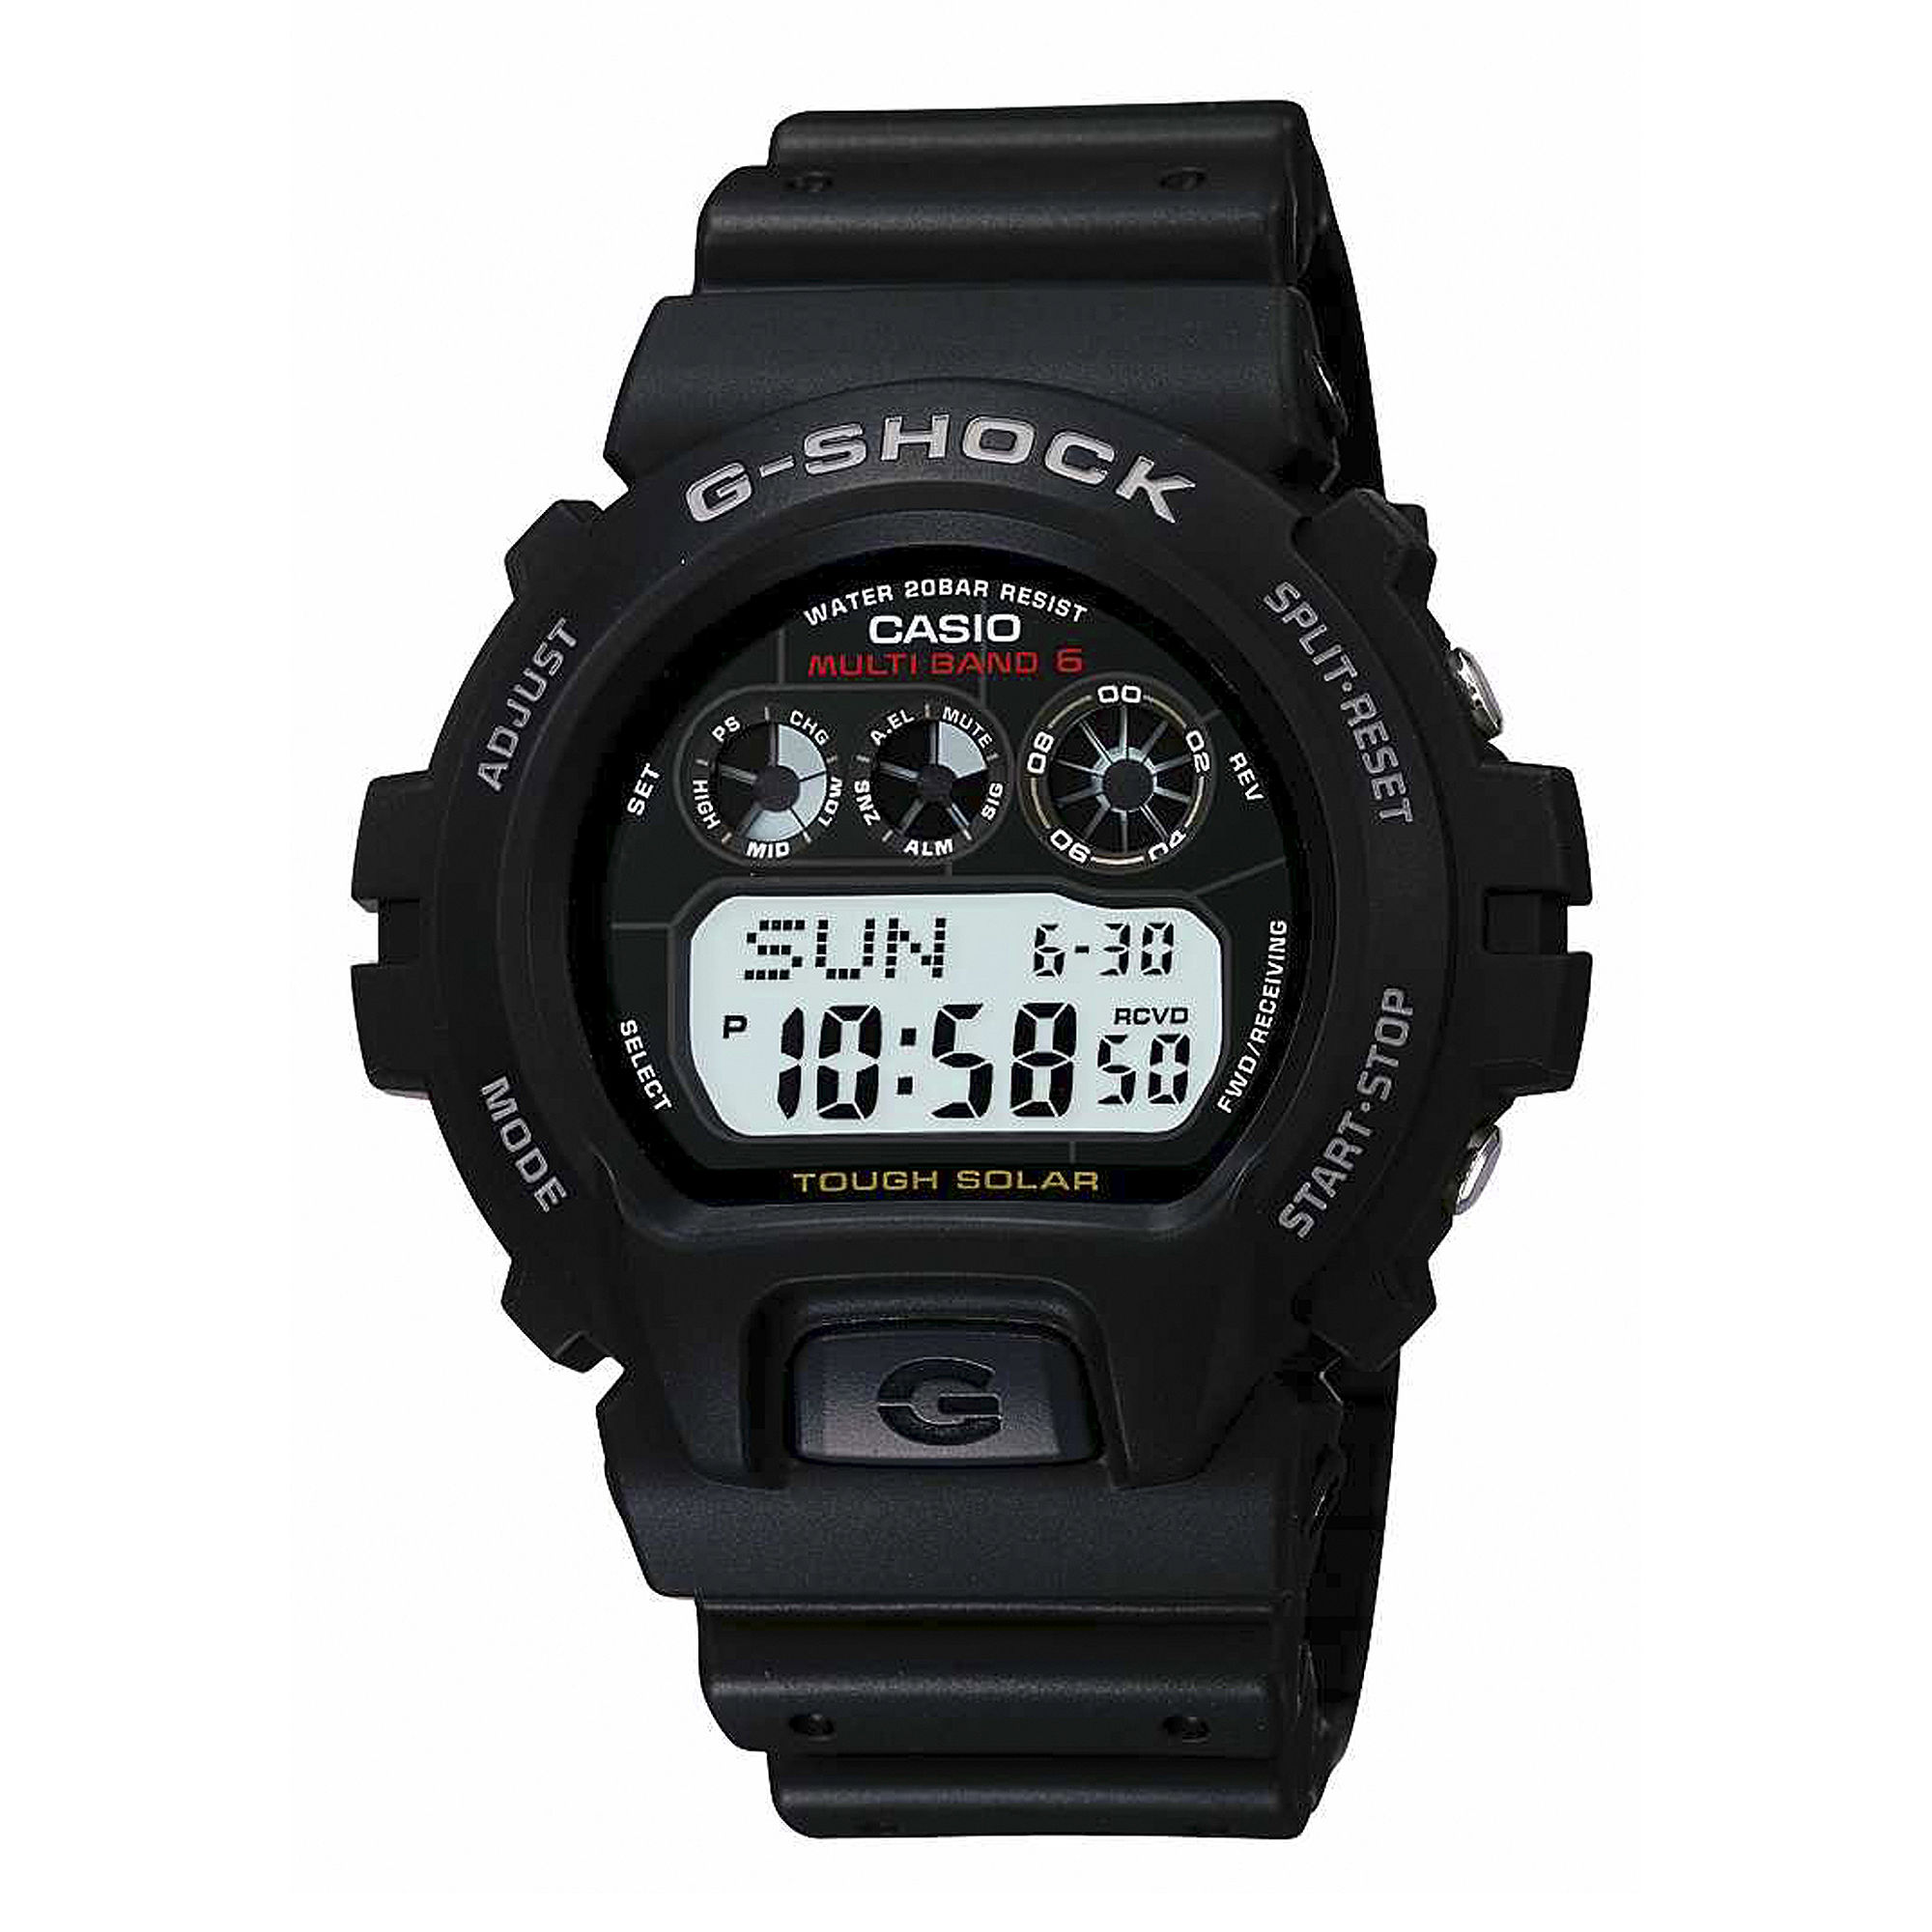 Casio G-Shock Tough Solar Mens Atomic Timekeeping Digital Sport Watch GW6900-1